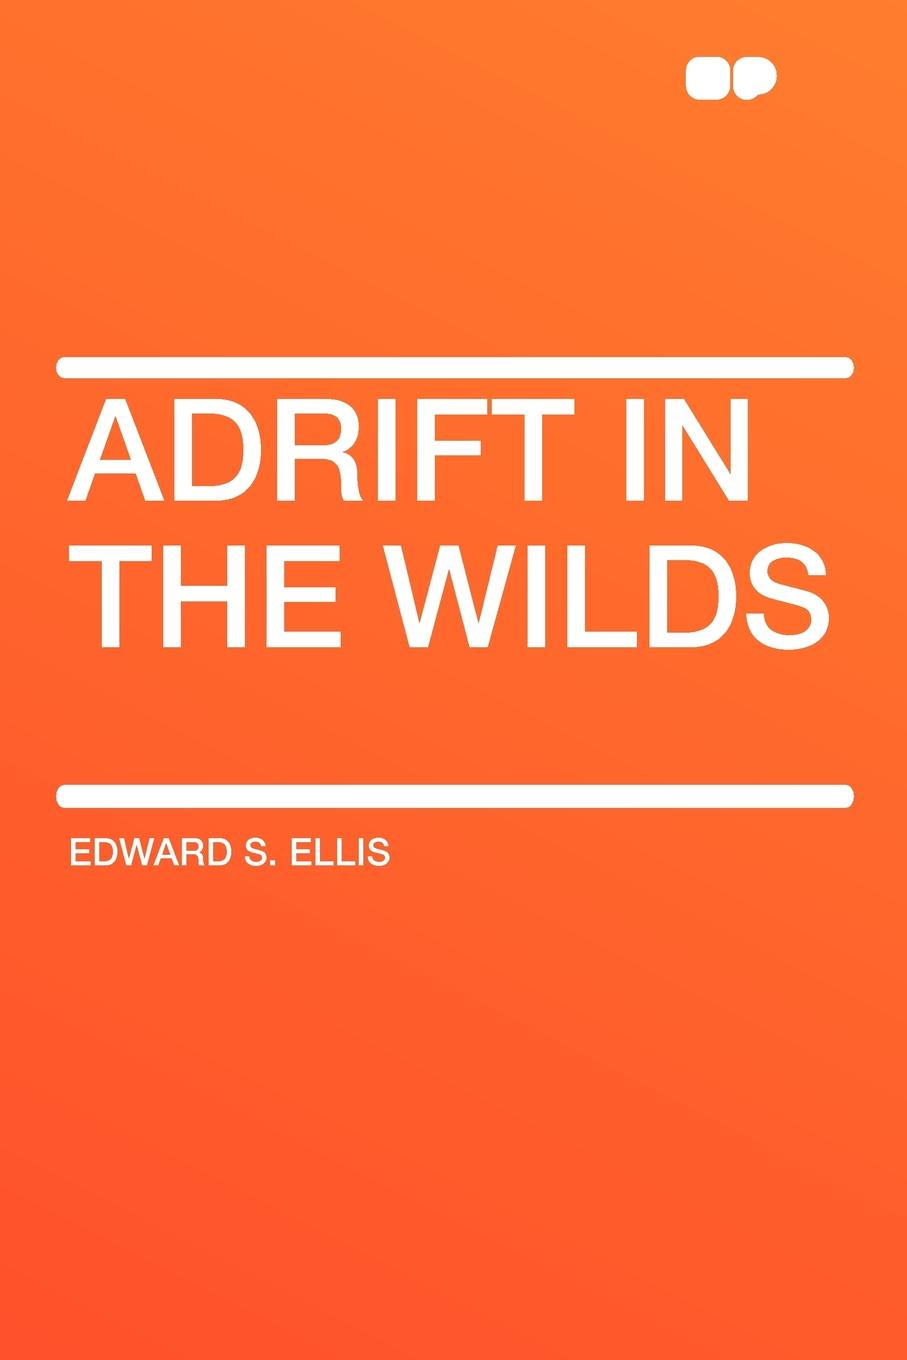 Edward S. Ellis Adrift in the Wilds wilds of the wolf